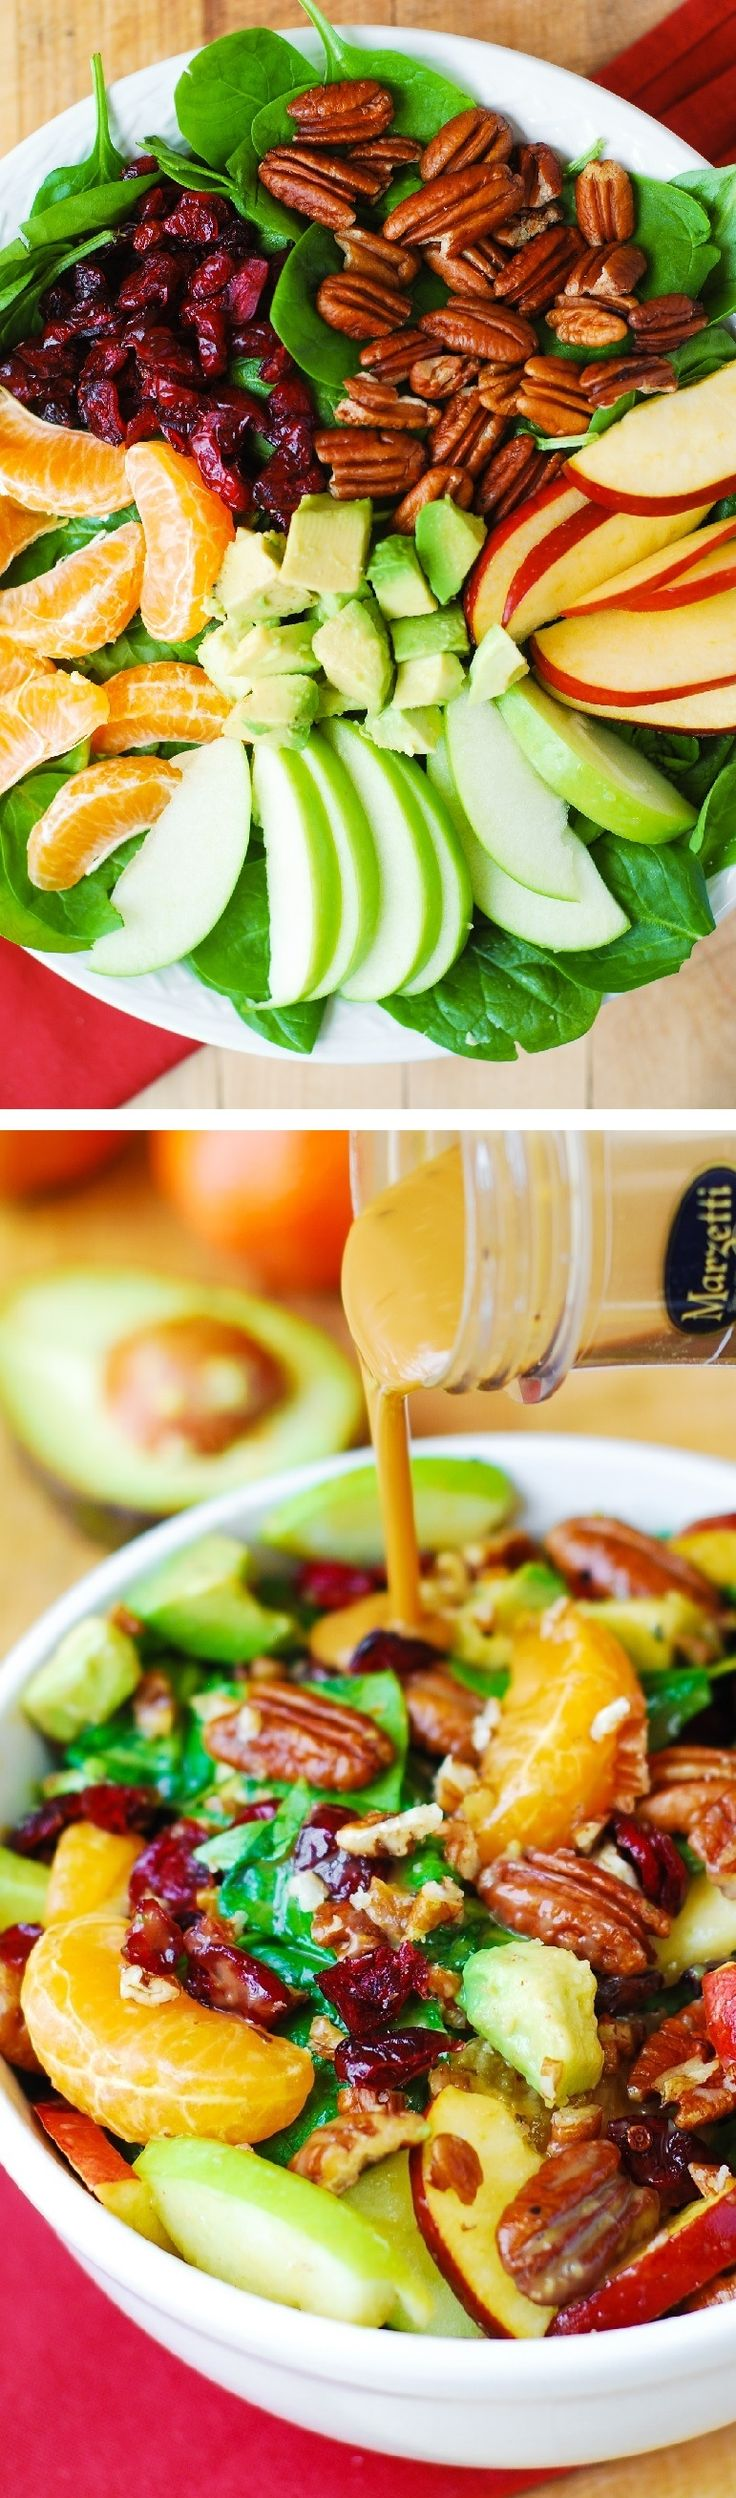 Apple Cranberry Spinach Salad Recipe + $100 VISA GIFT CARD GIVEAWAY (ENDS MAY 2015) ! Ingredients include Pecans, Avocados (and Balsamic Vinaigrette Dressing) - delicious, healthy, vegetarian, gluten free recipe! #Marzetti #BH #ad